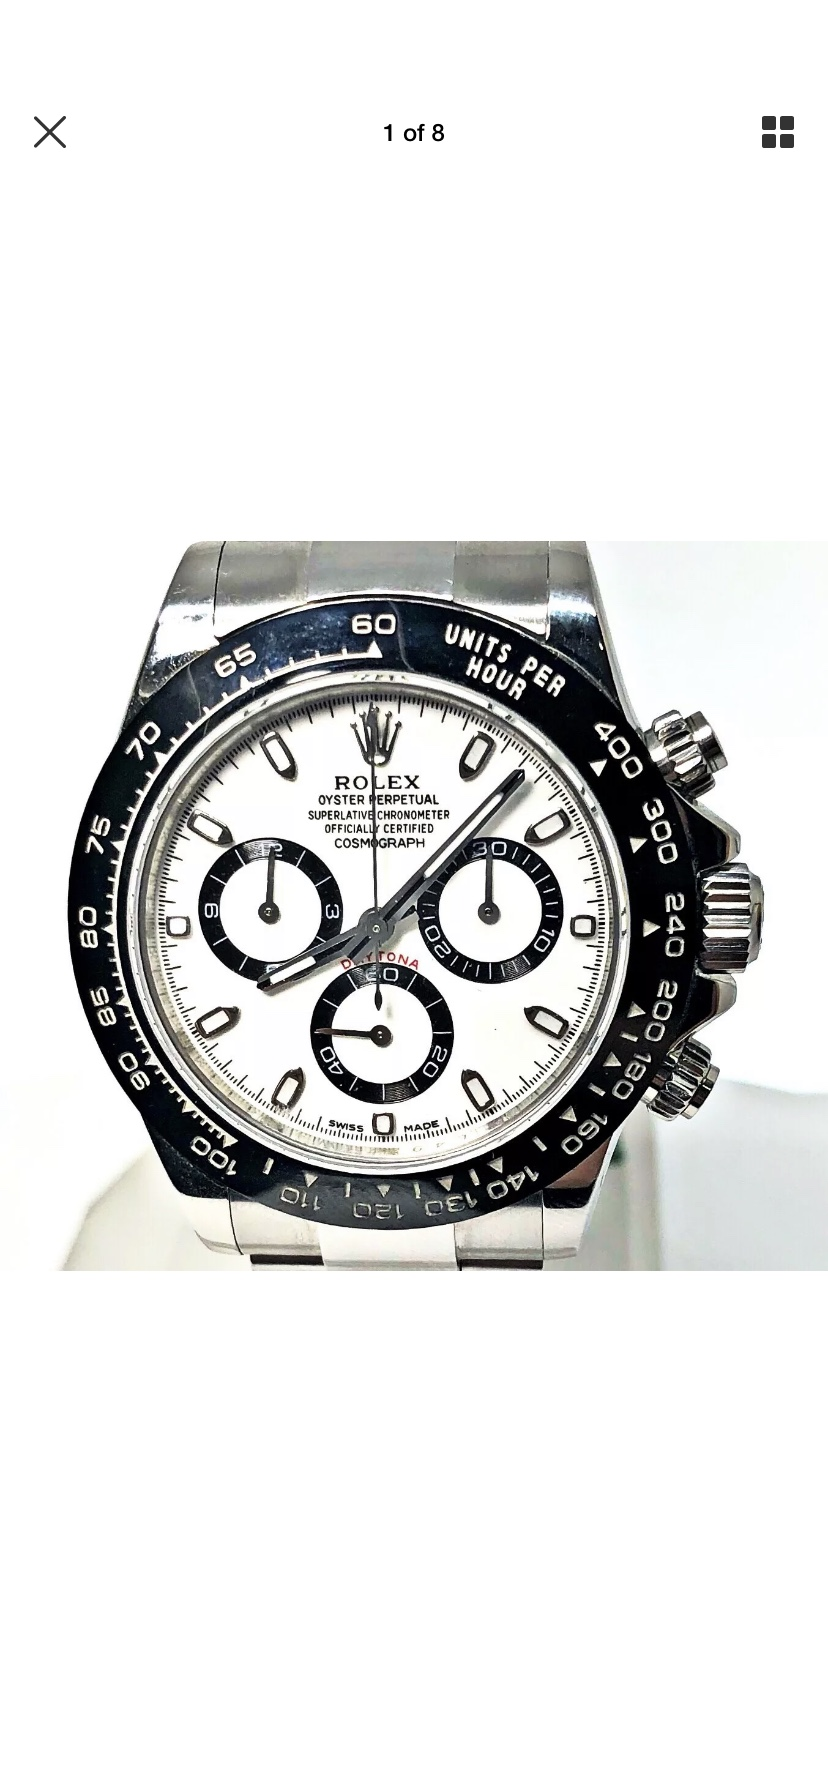 Questionable Daytona Or Just Bad Pictures Rolex Forums Rolex Watch Forum